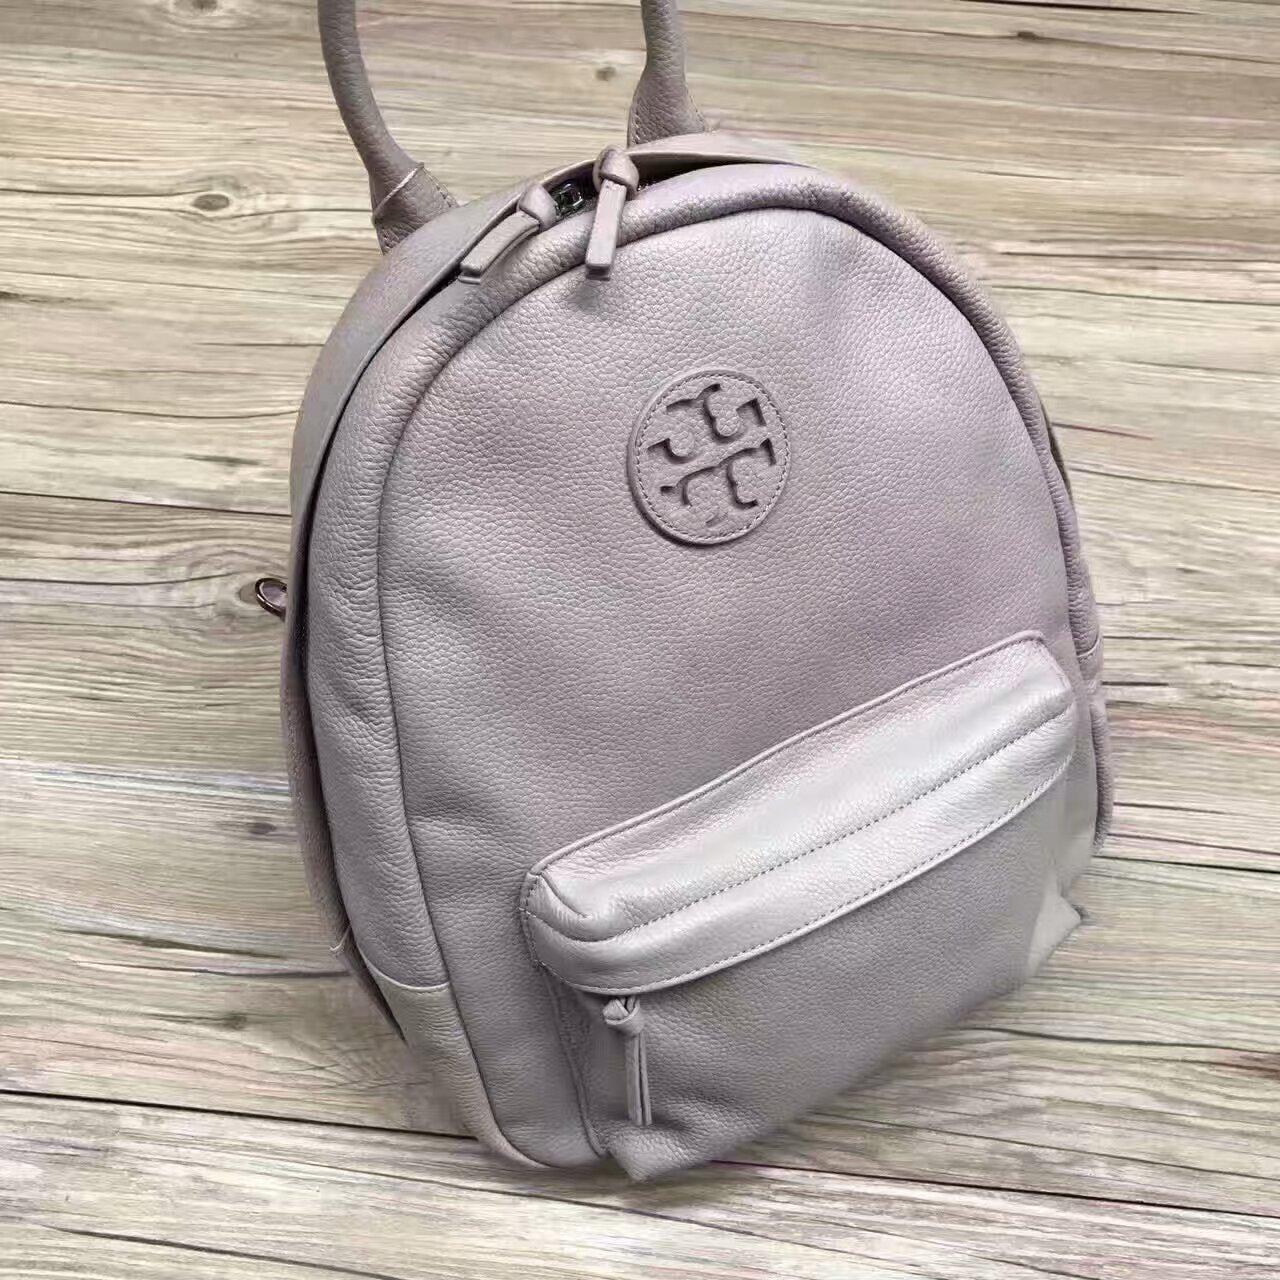 New Tory Burch Leather Backpack